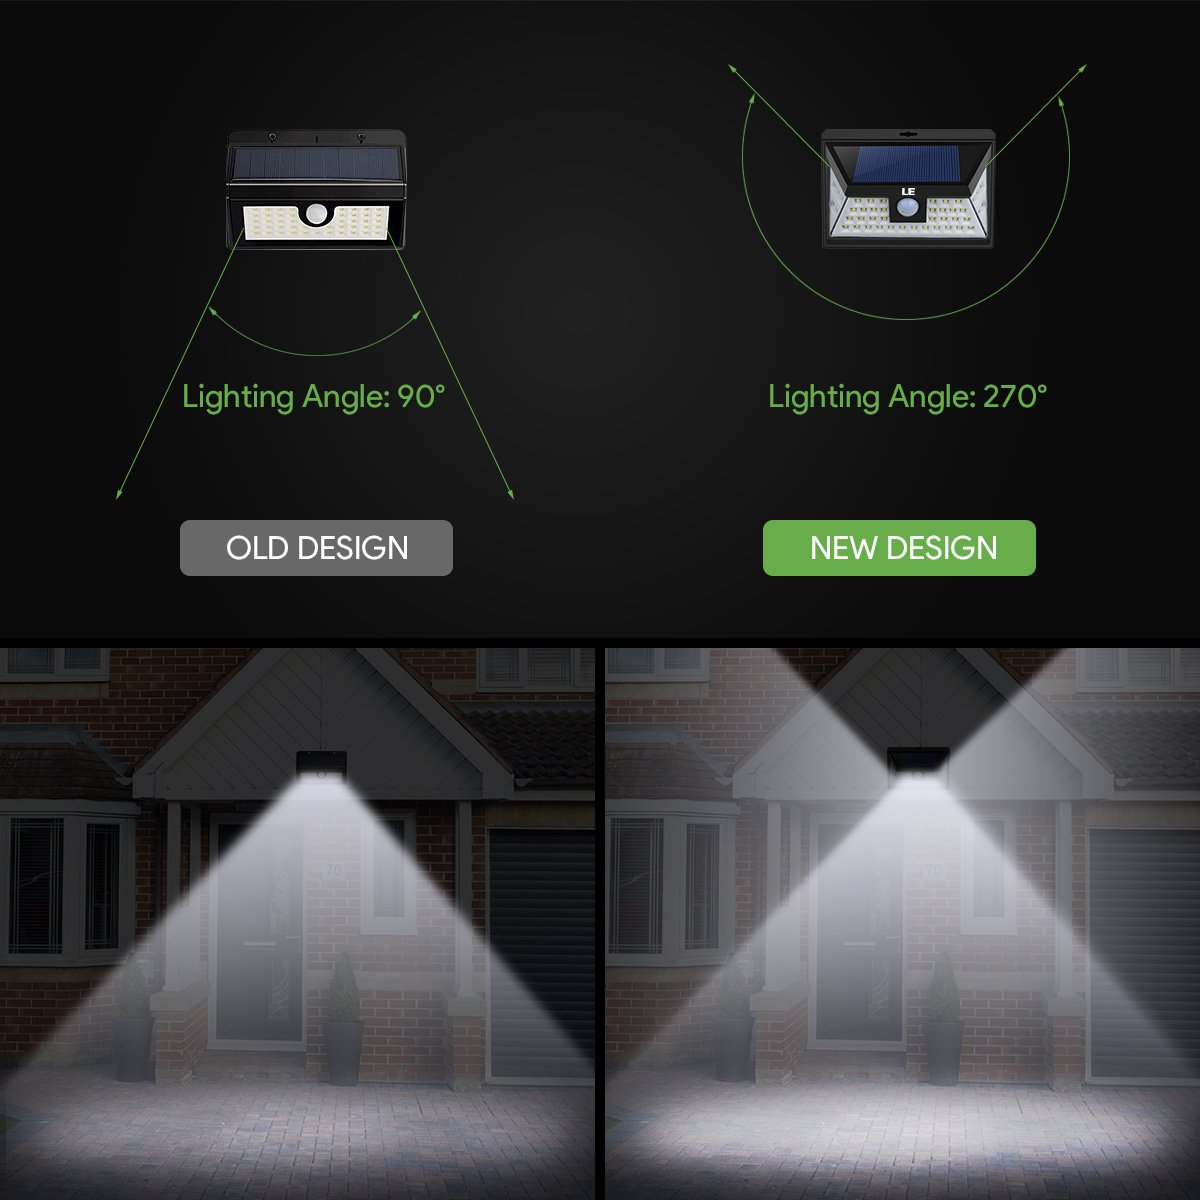 LE 44 LED Solar Powered Lights Outdoor with Motion Sensor, 3 Optional Lighting Modes, 270 Degree Angle, Daylight White 6000K, 4W 550LM, for Garden, Fence, Driveway, Front Door and More, Pack of 4 by Lighting EVER (Image #3)